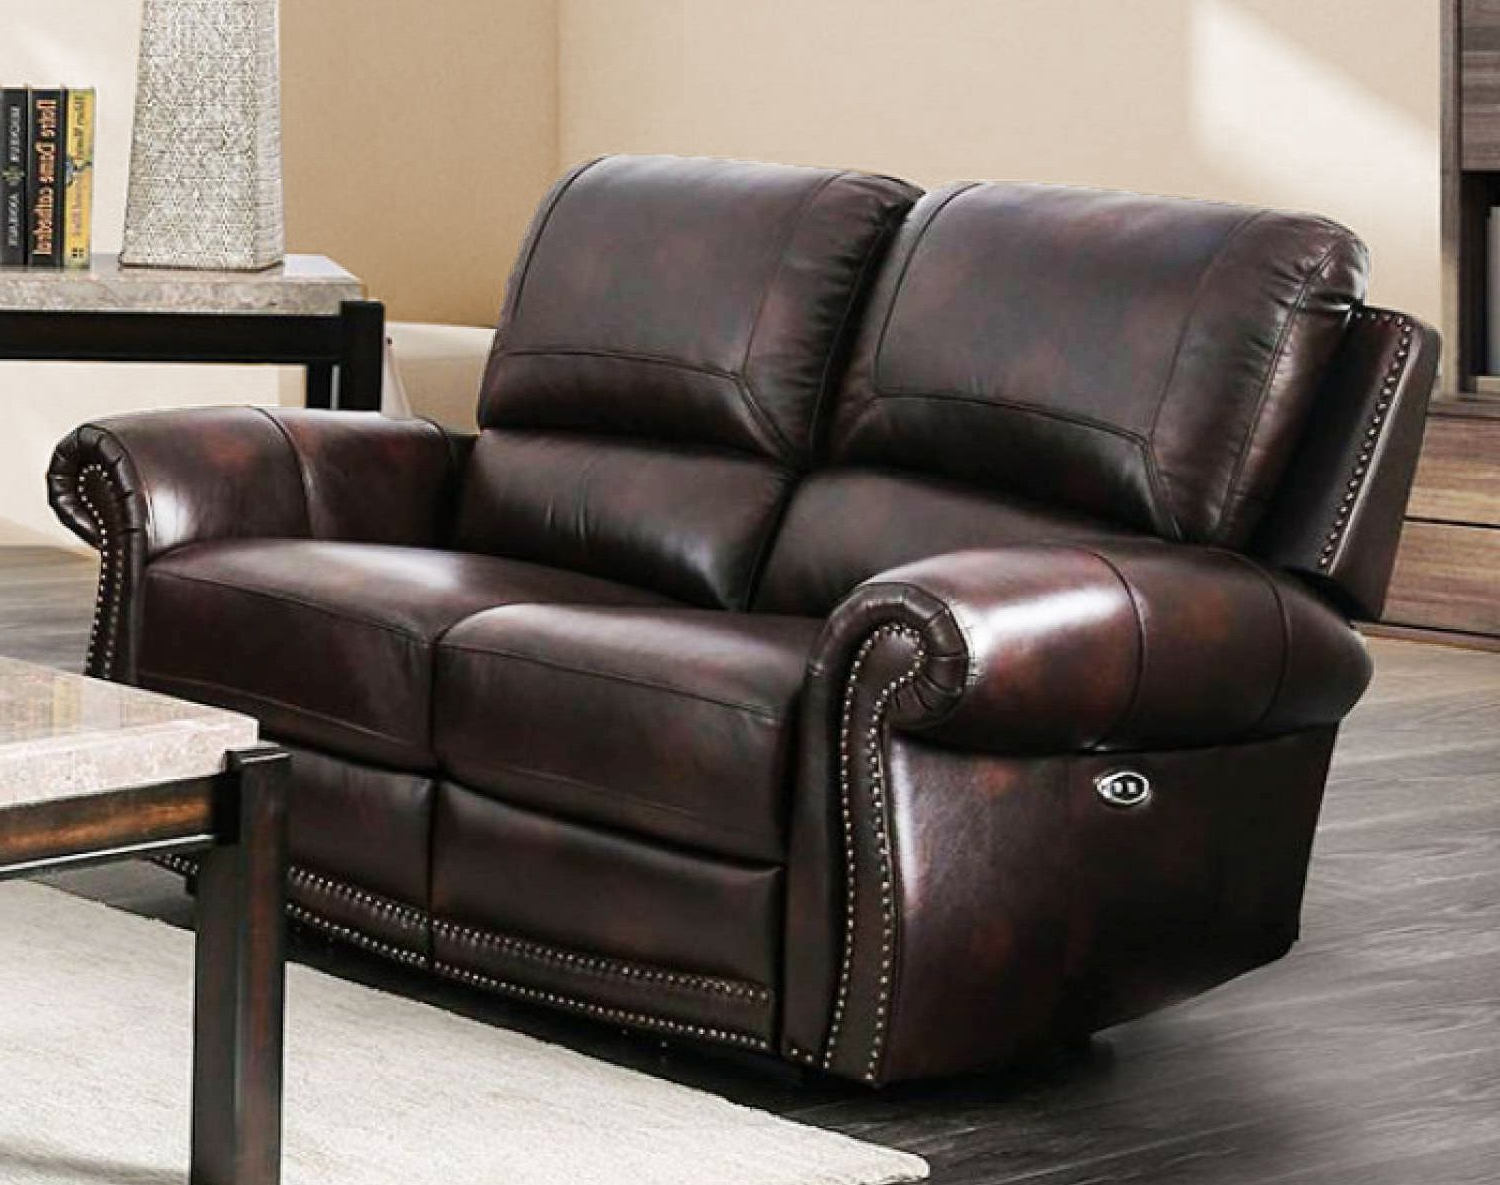 2017 Brown Genuine Leather Power Reclining Sofa & Loveseat Nail In Nolan Leather Power Reclining Sofas (View 2 of 15)